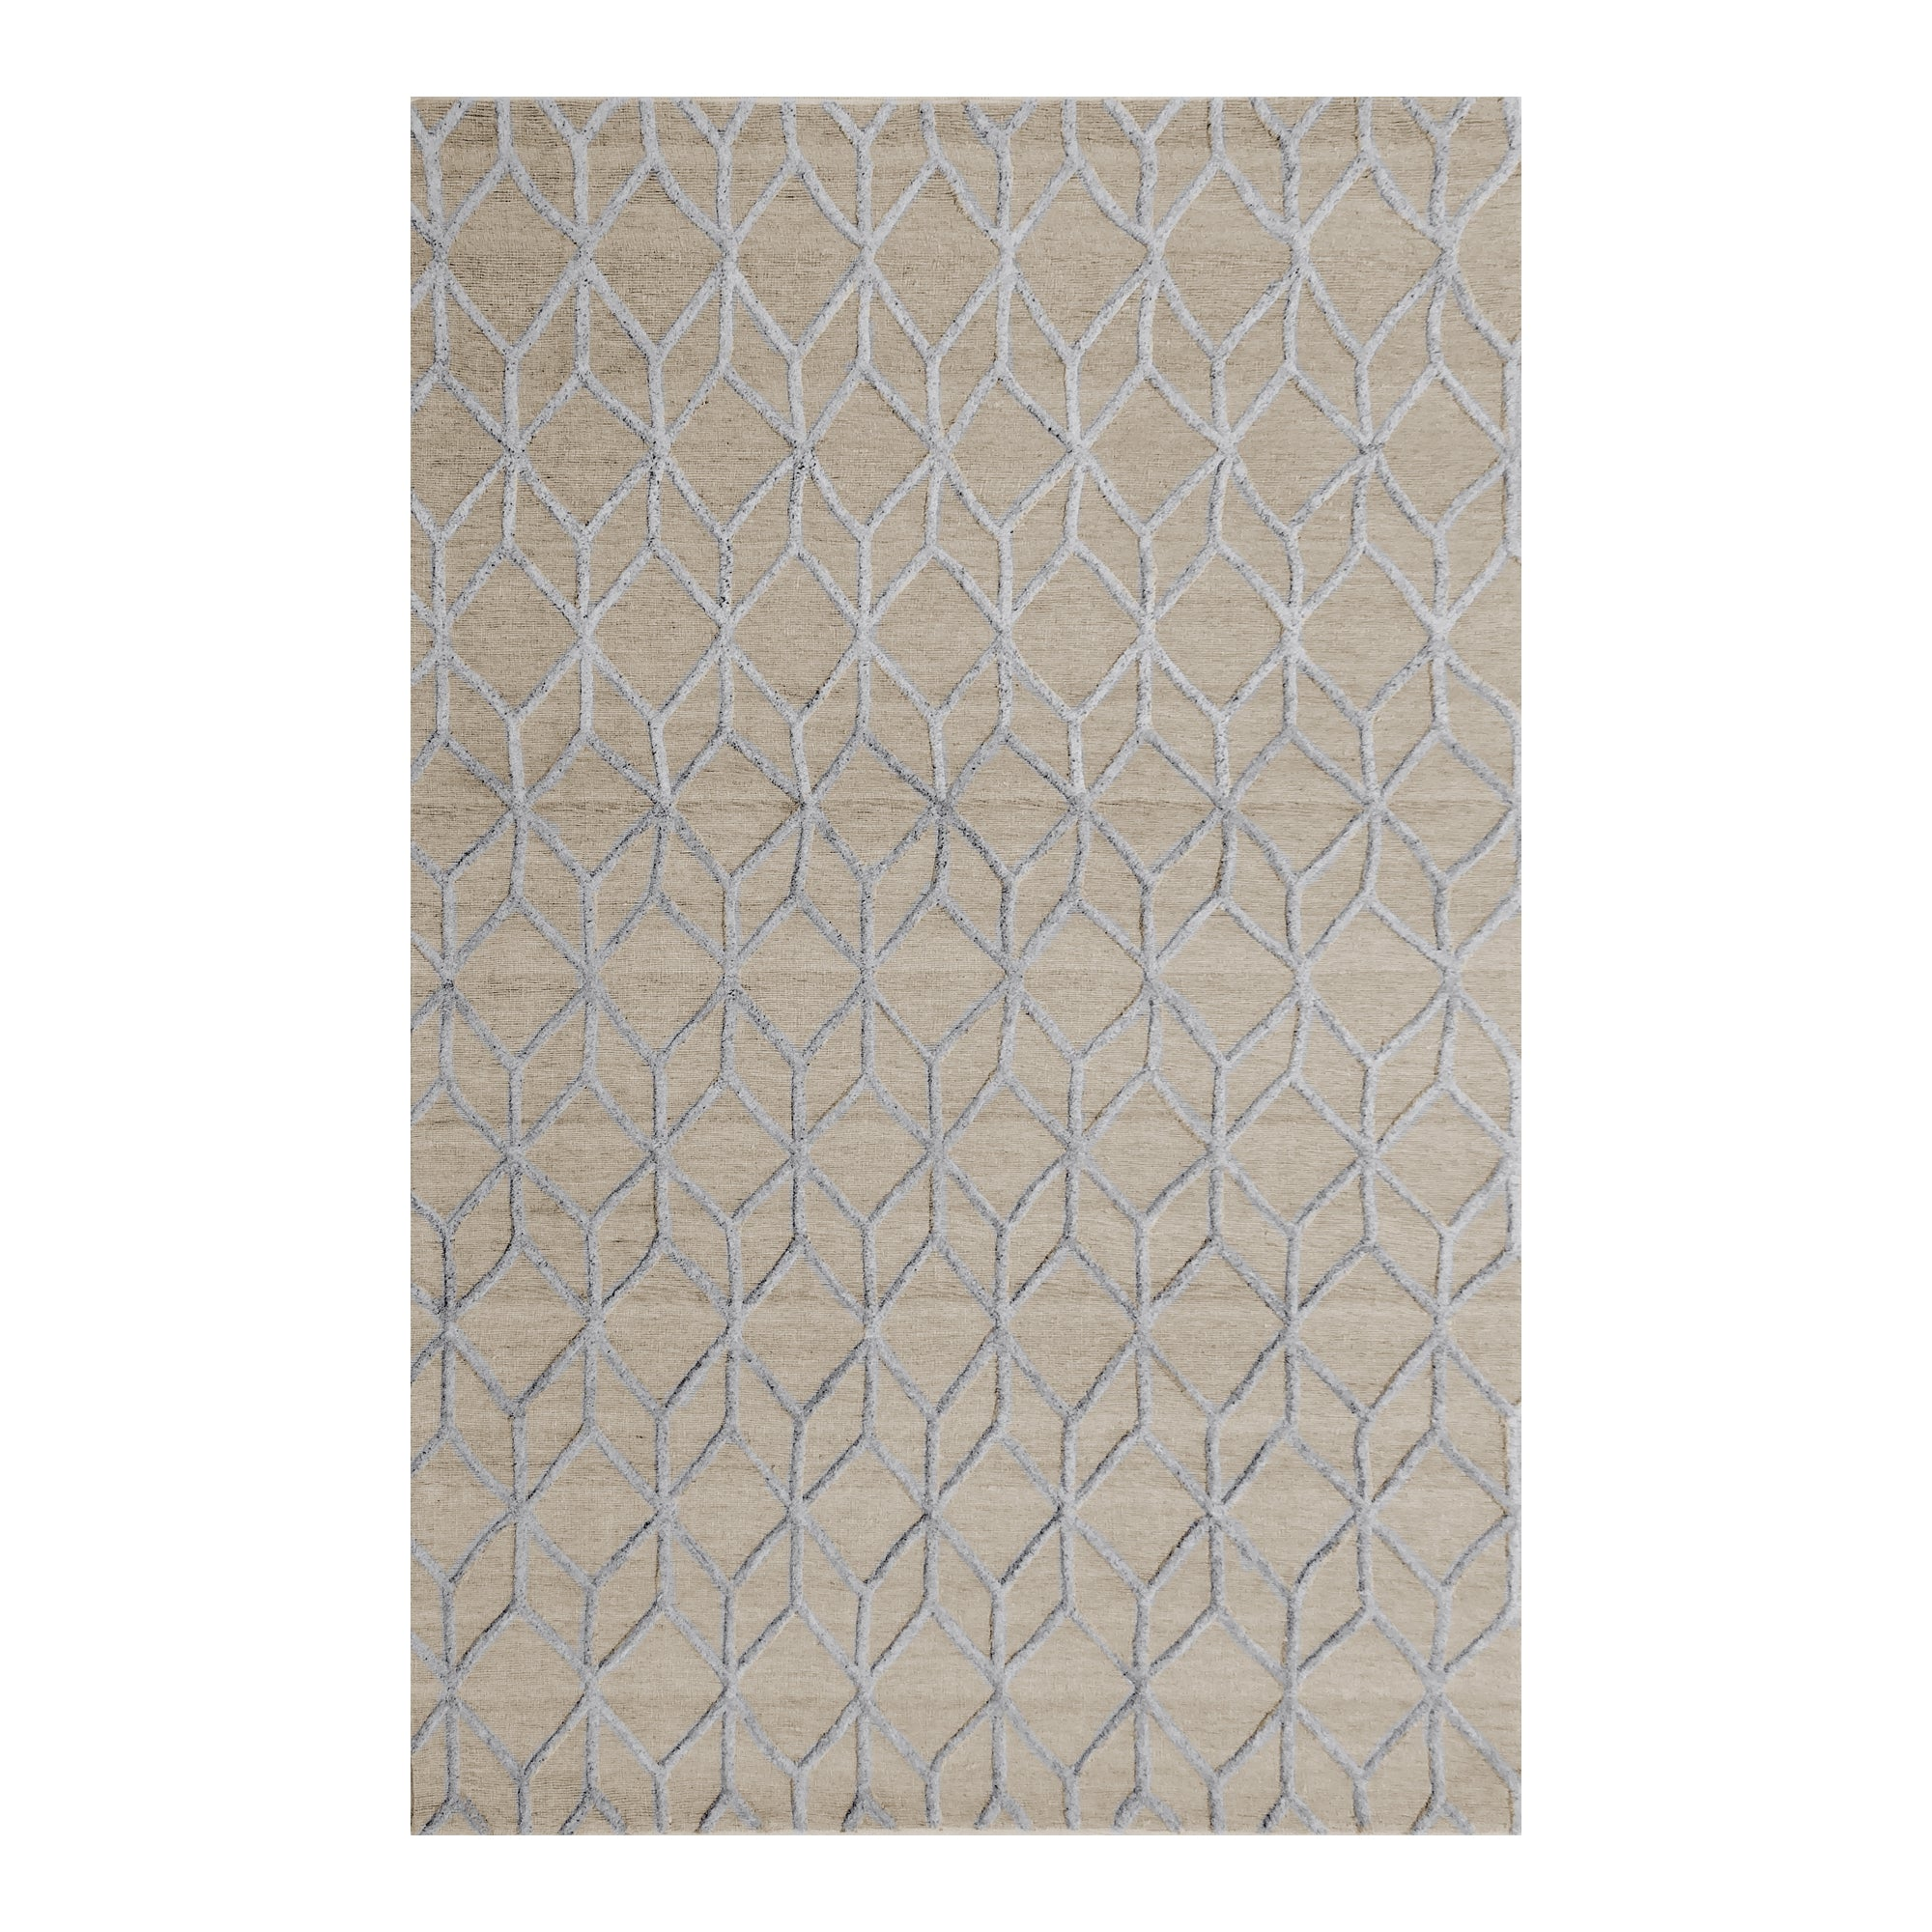 RHUMBA RUG 5X8, Grey - Tops-Dress